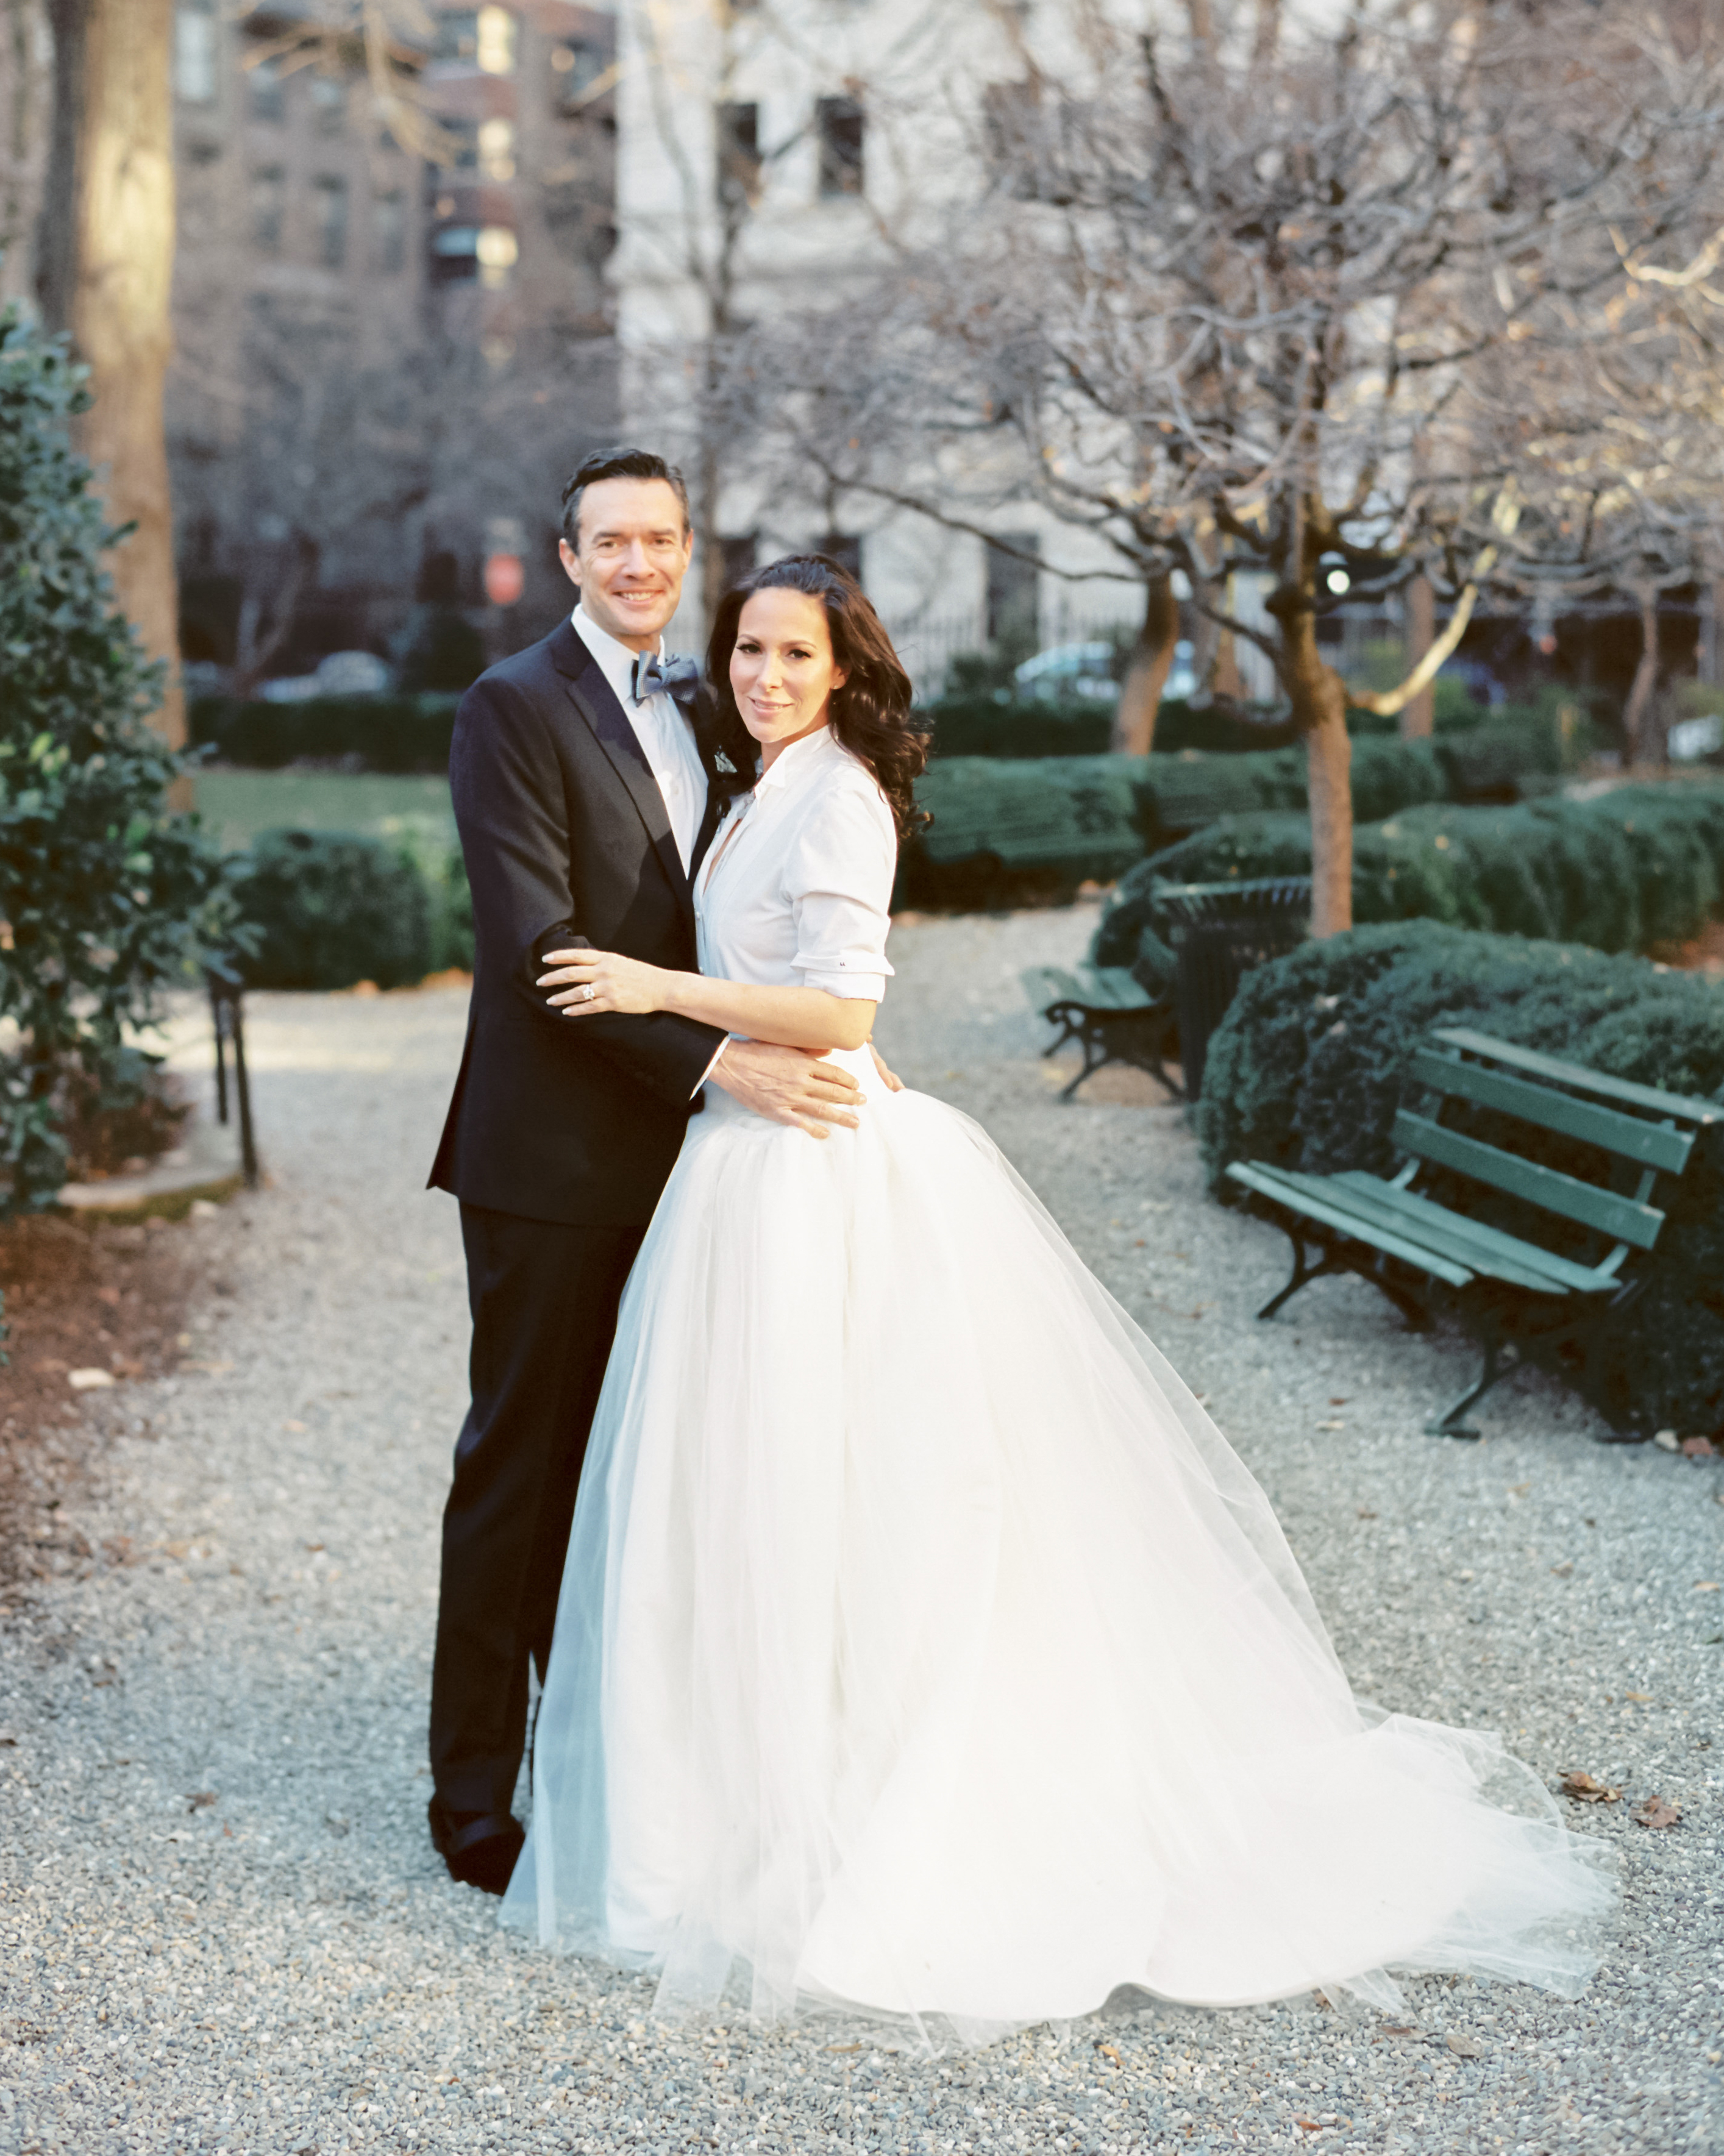 A New Year's Day New York City Wedding